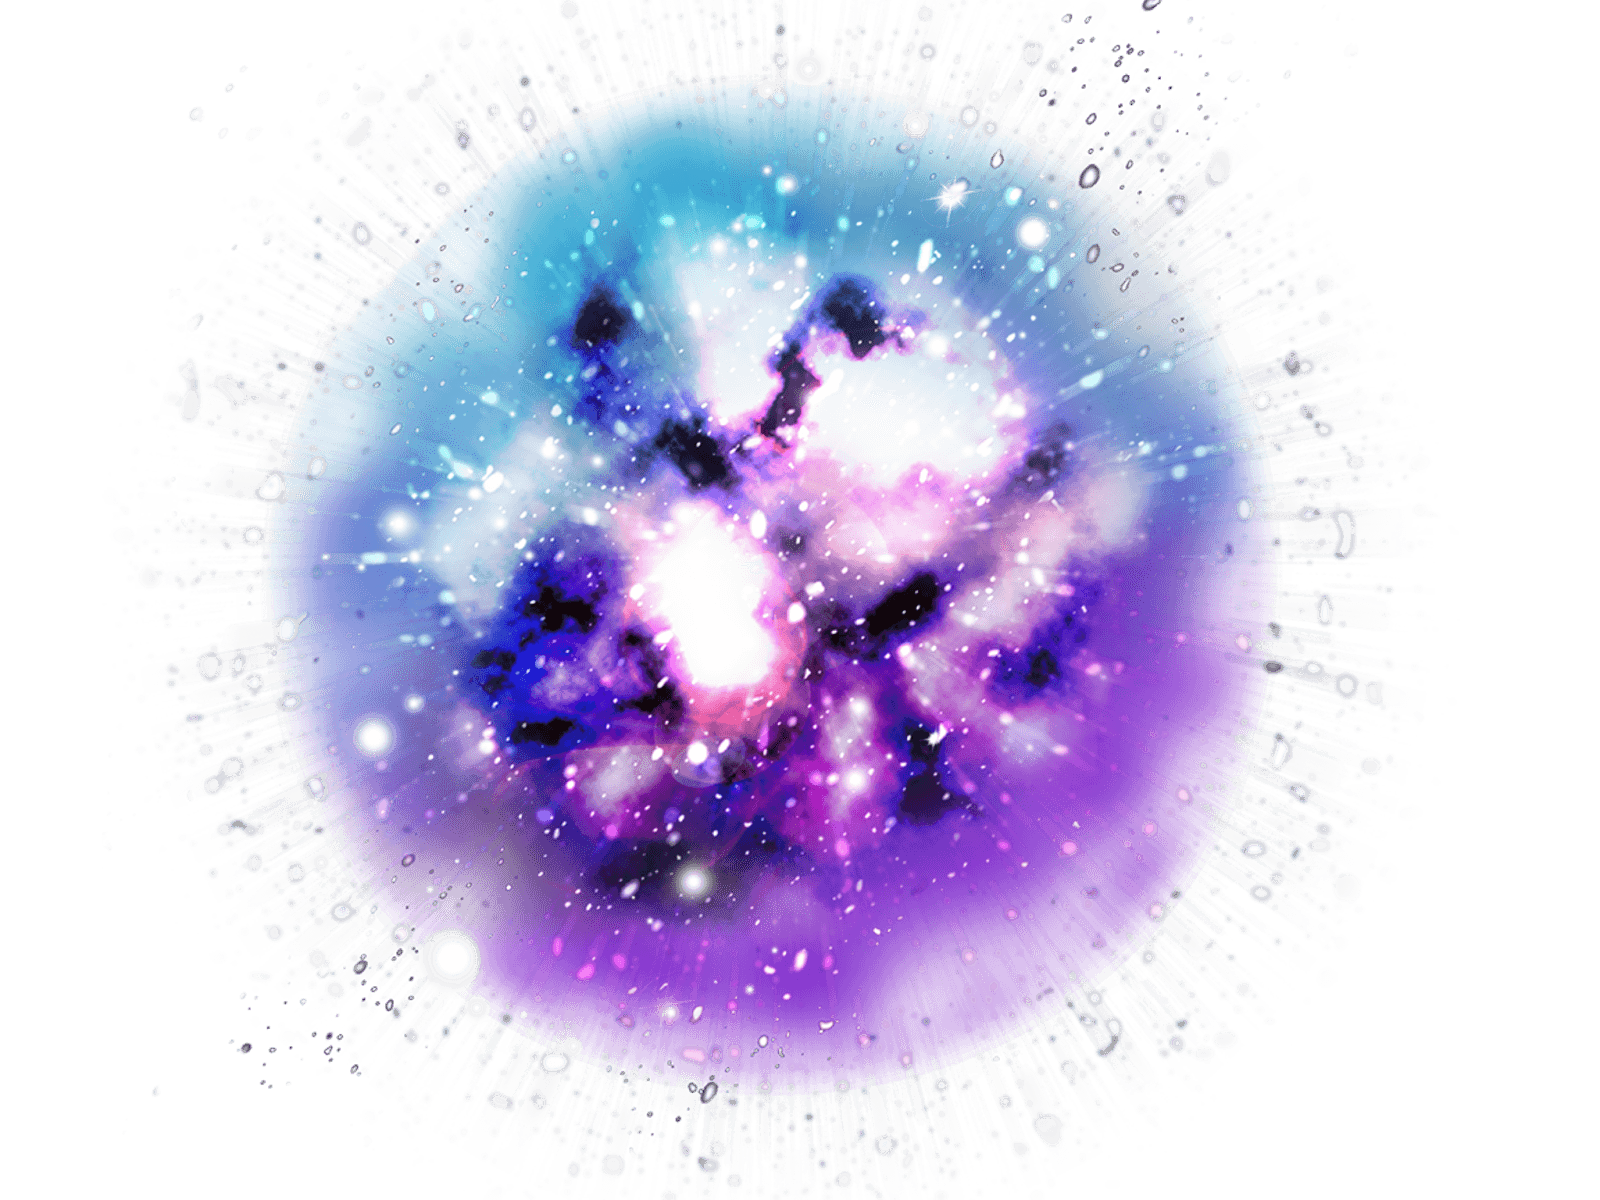 Star dust clipart graphic royalty free library 28+ Collection of Picsart Clipart Stardust | High quality, free ... graphic royalty free library